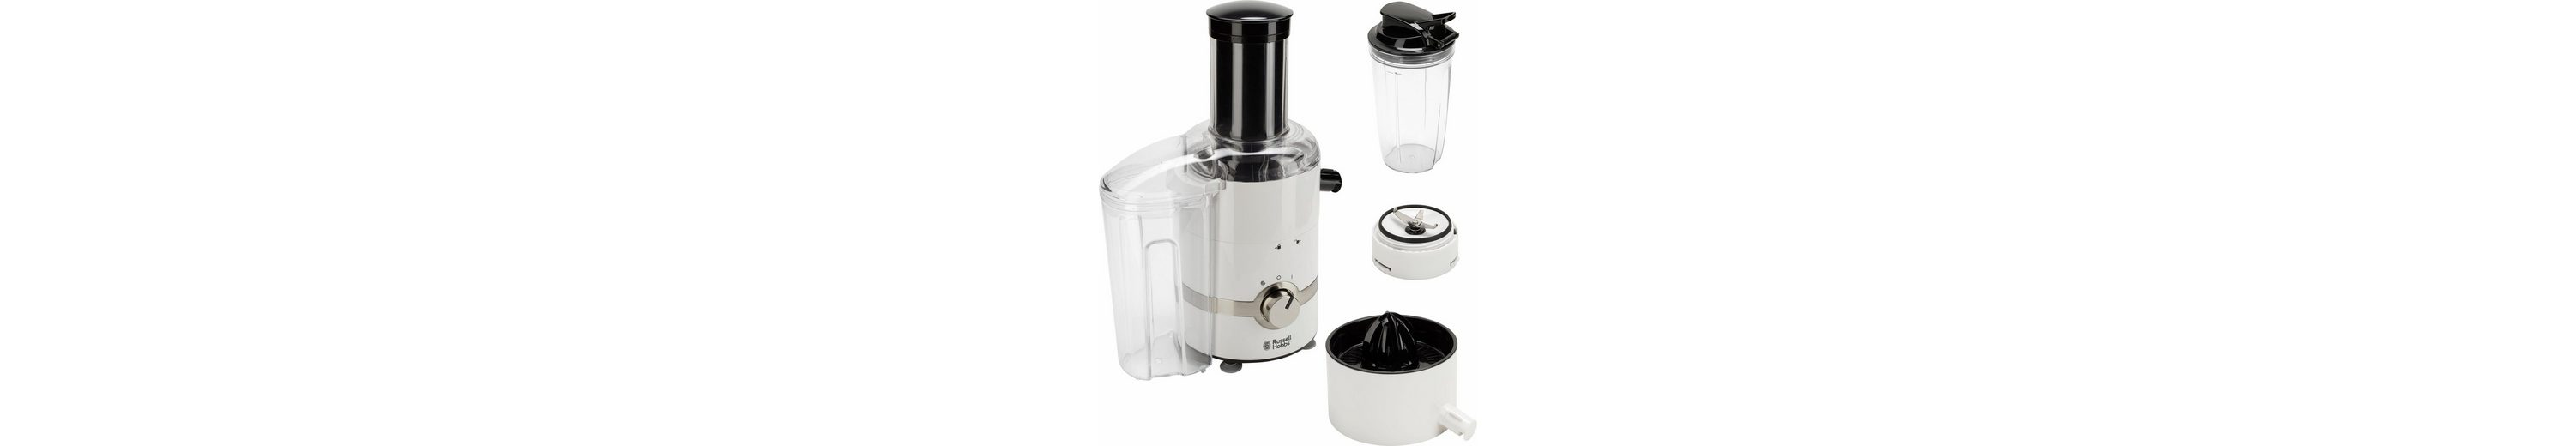 Russell Hobbs 3 in 1 Ultimative Entsafter-Zitruspresse-Smoothie Maker 22700-56, 800 Watt